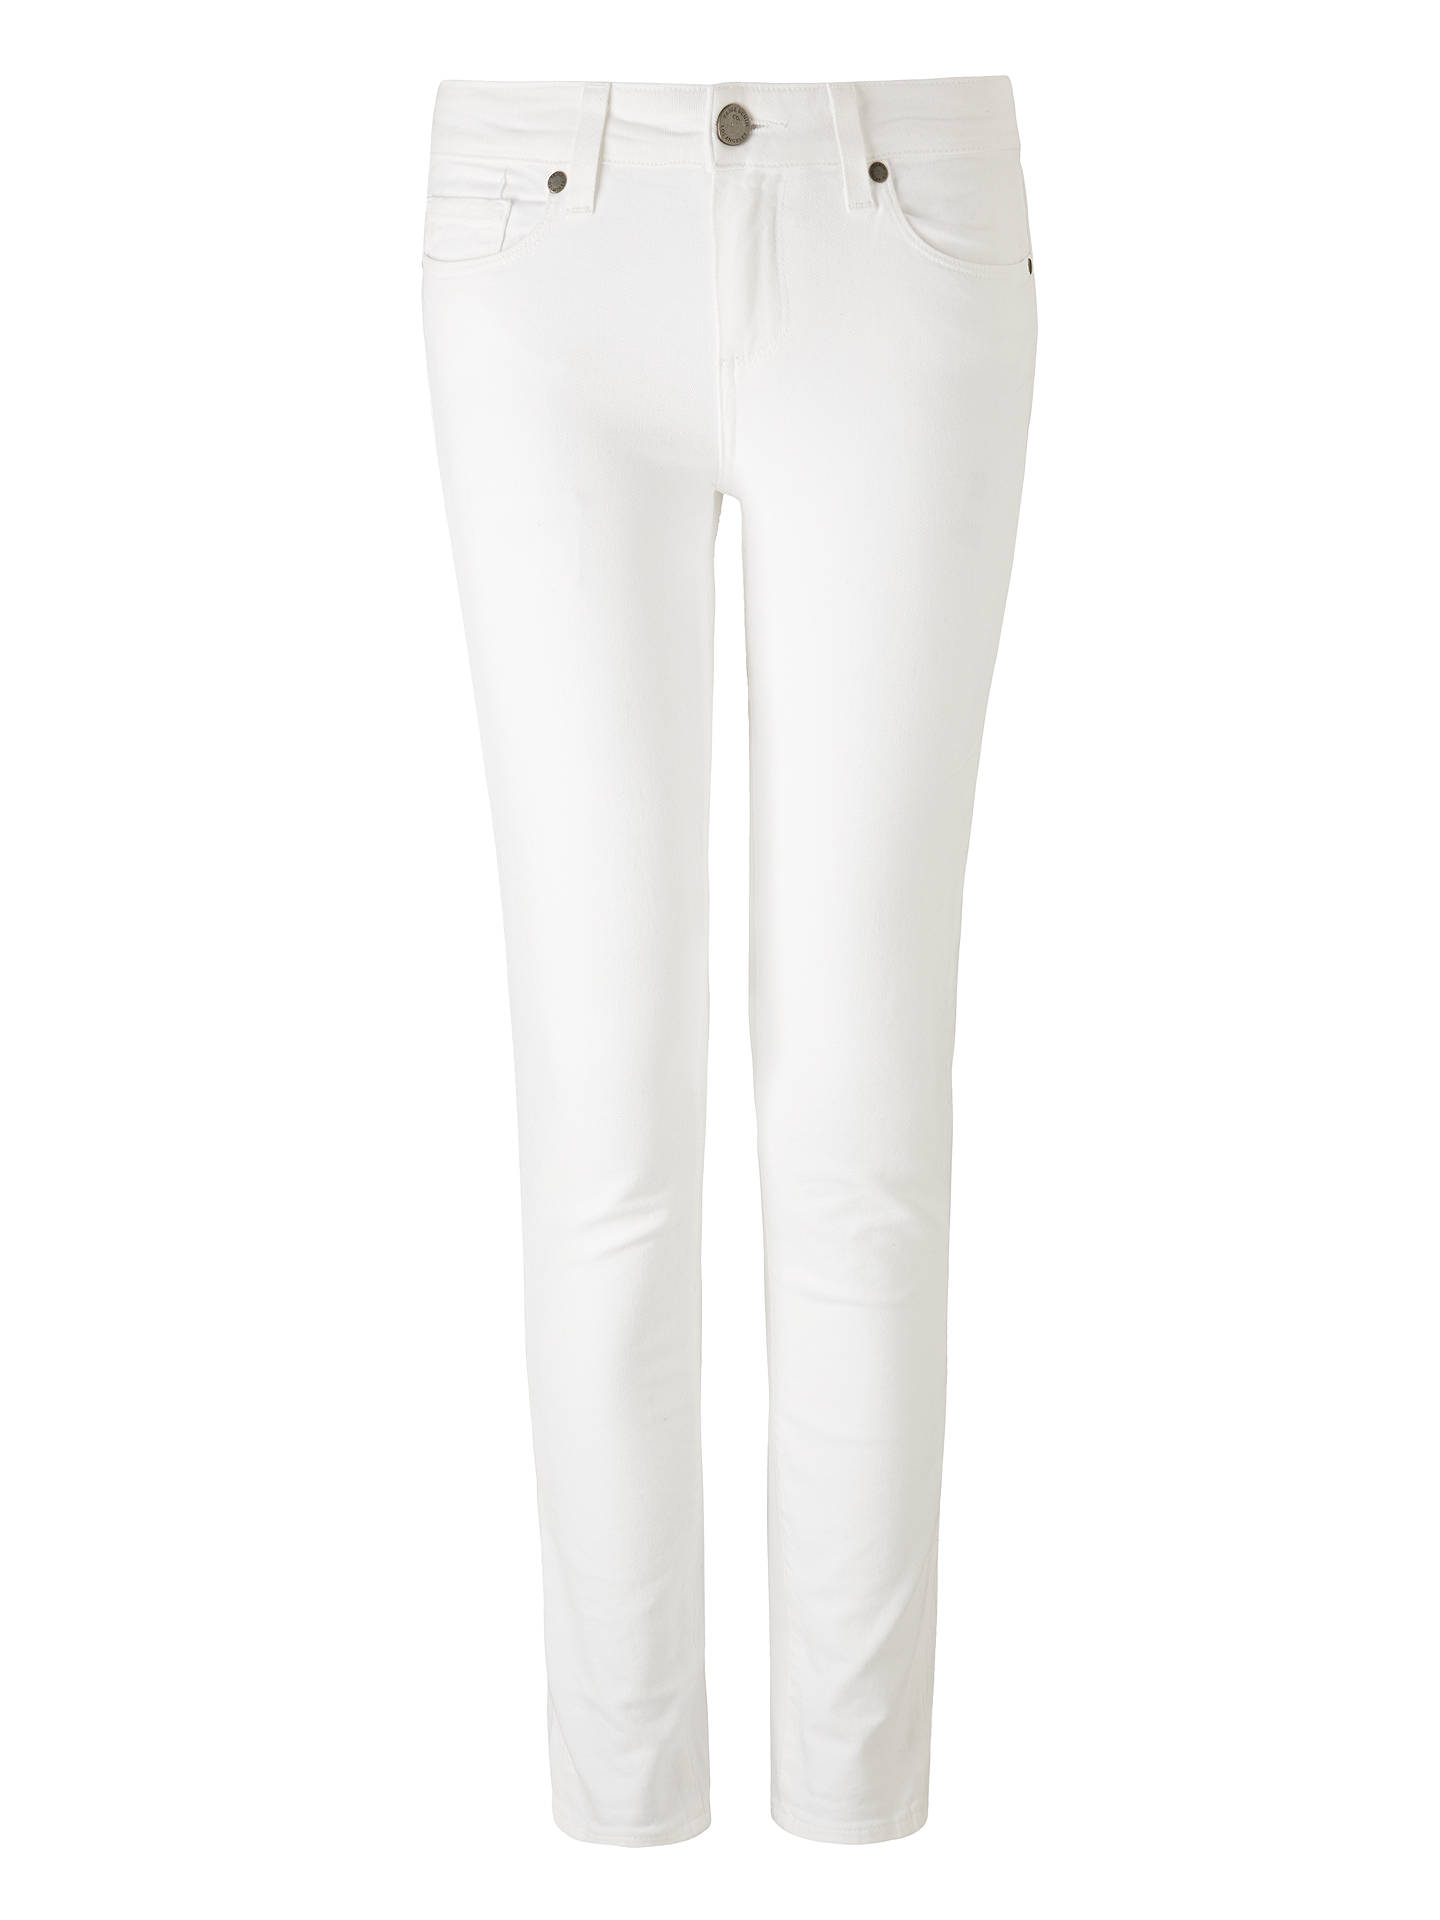 BuyPaige Skyline Skinny Jeans, Optic White, 24 Online at johnlewis.com